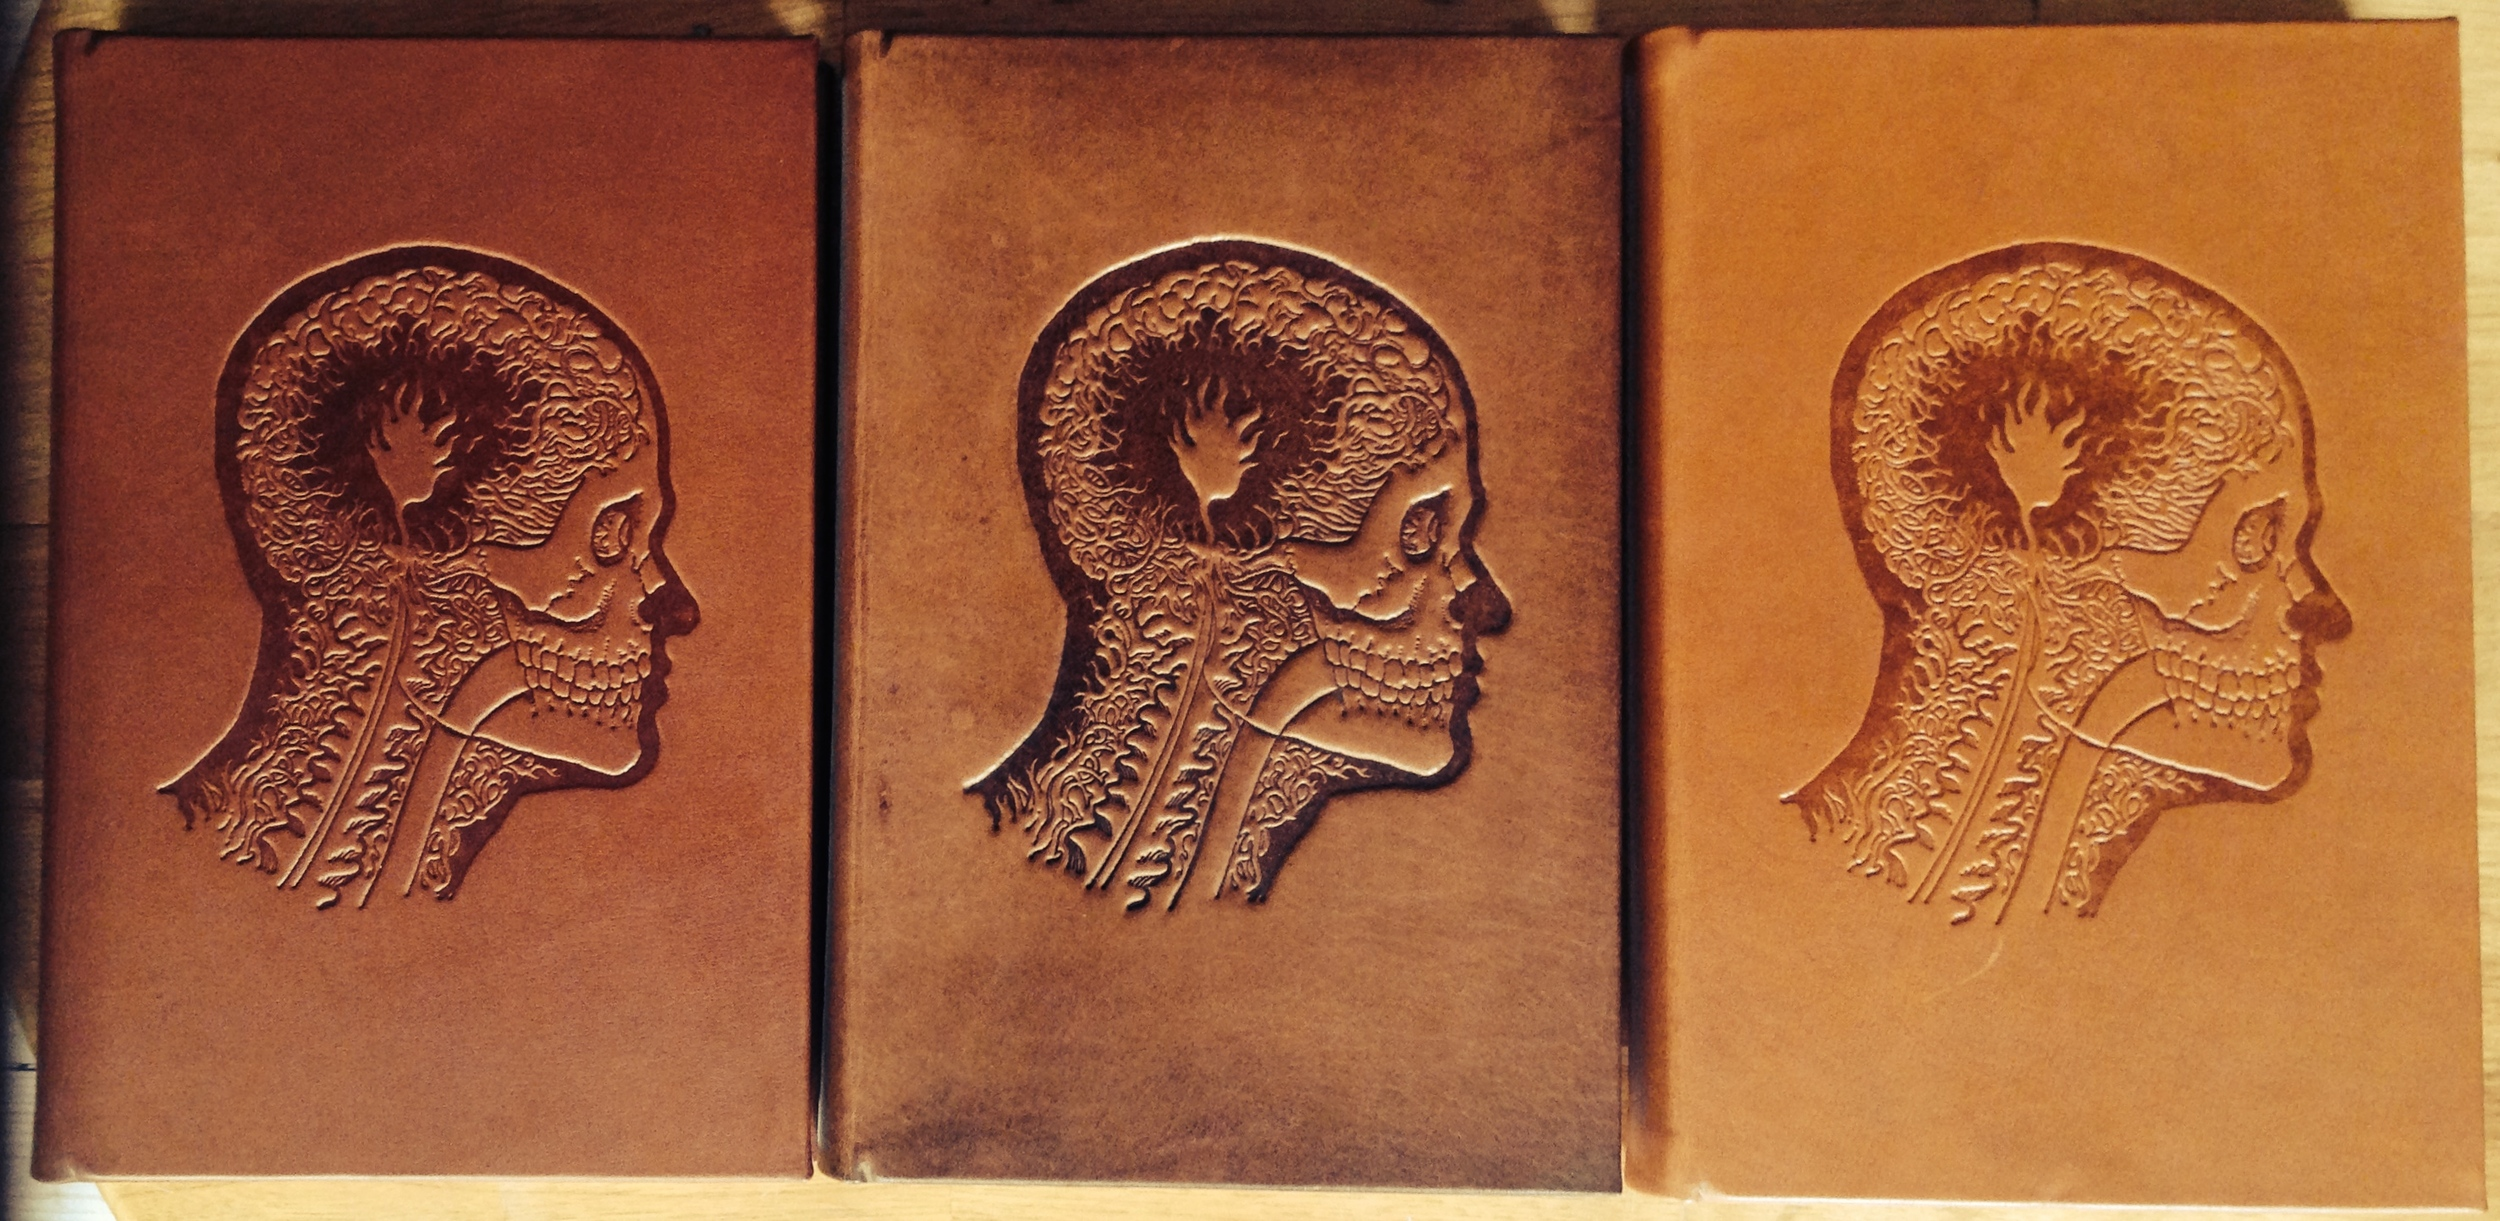 Calfskin bound hardcover variants, CFCL first edition